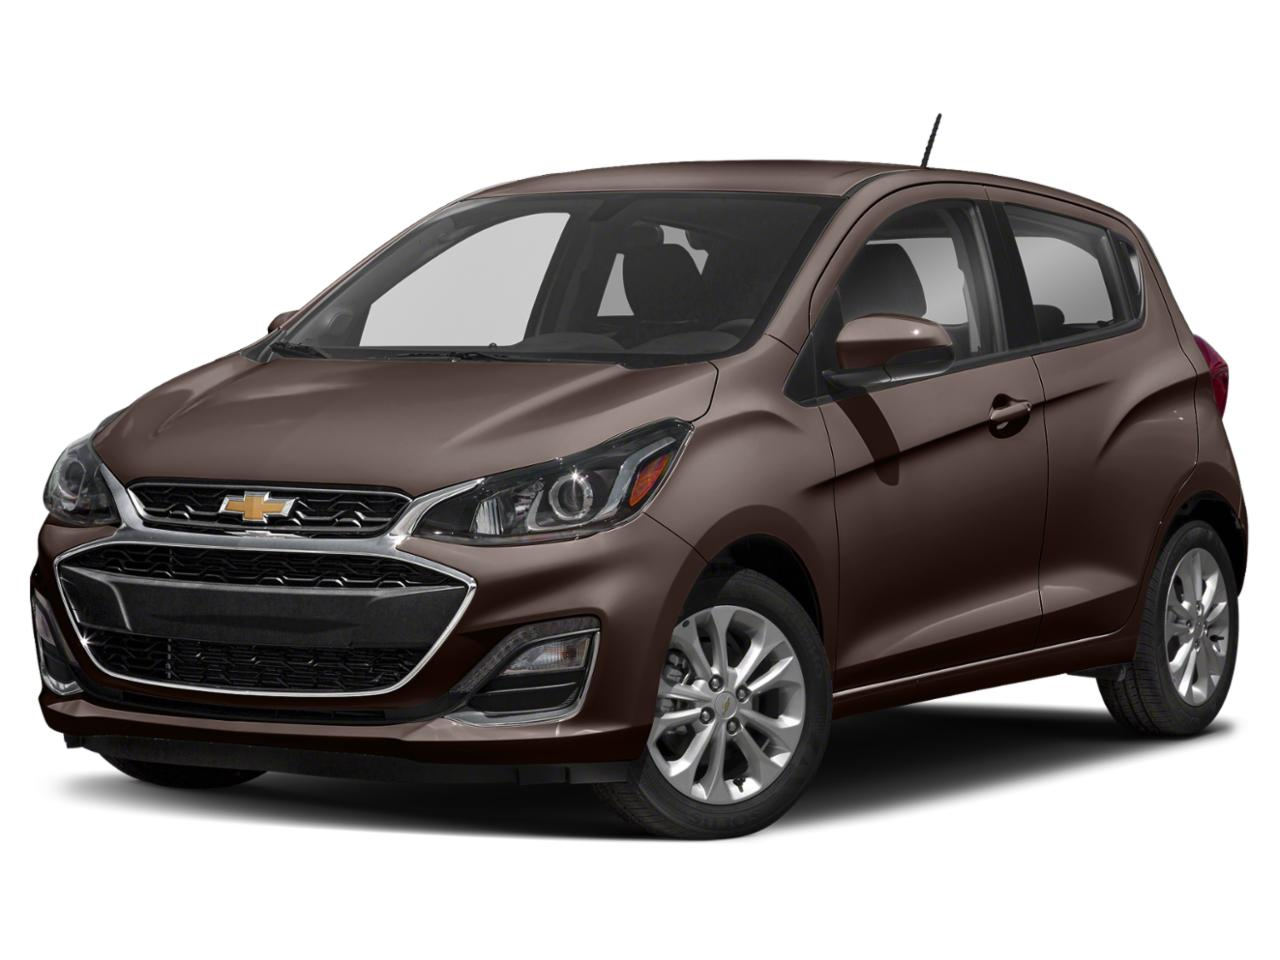 2021 Chevrolet Spark Vehicle Photo in Melbourne, FL 32901